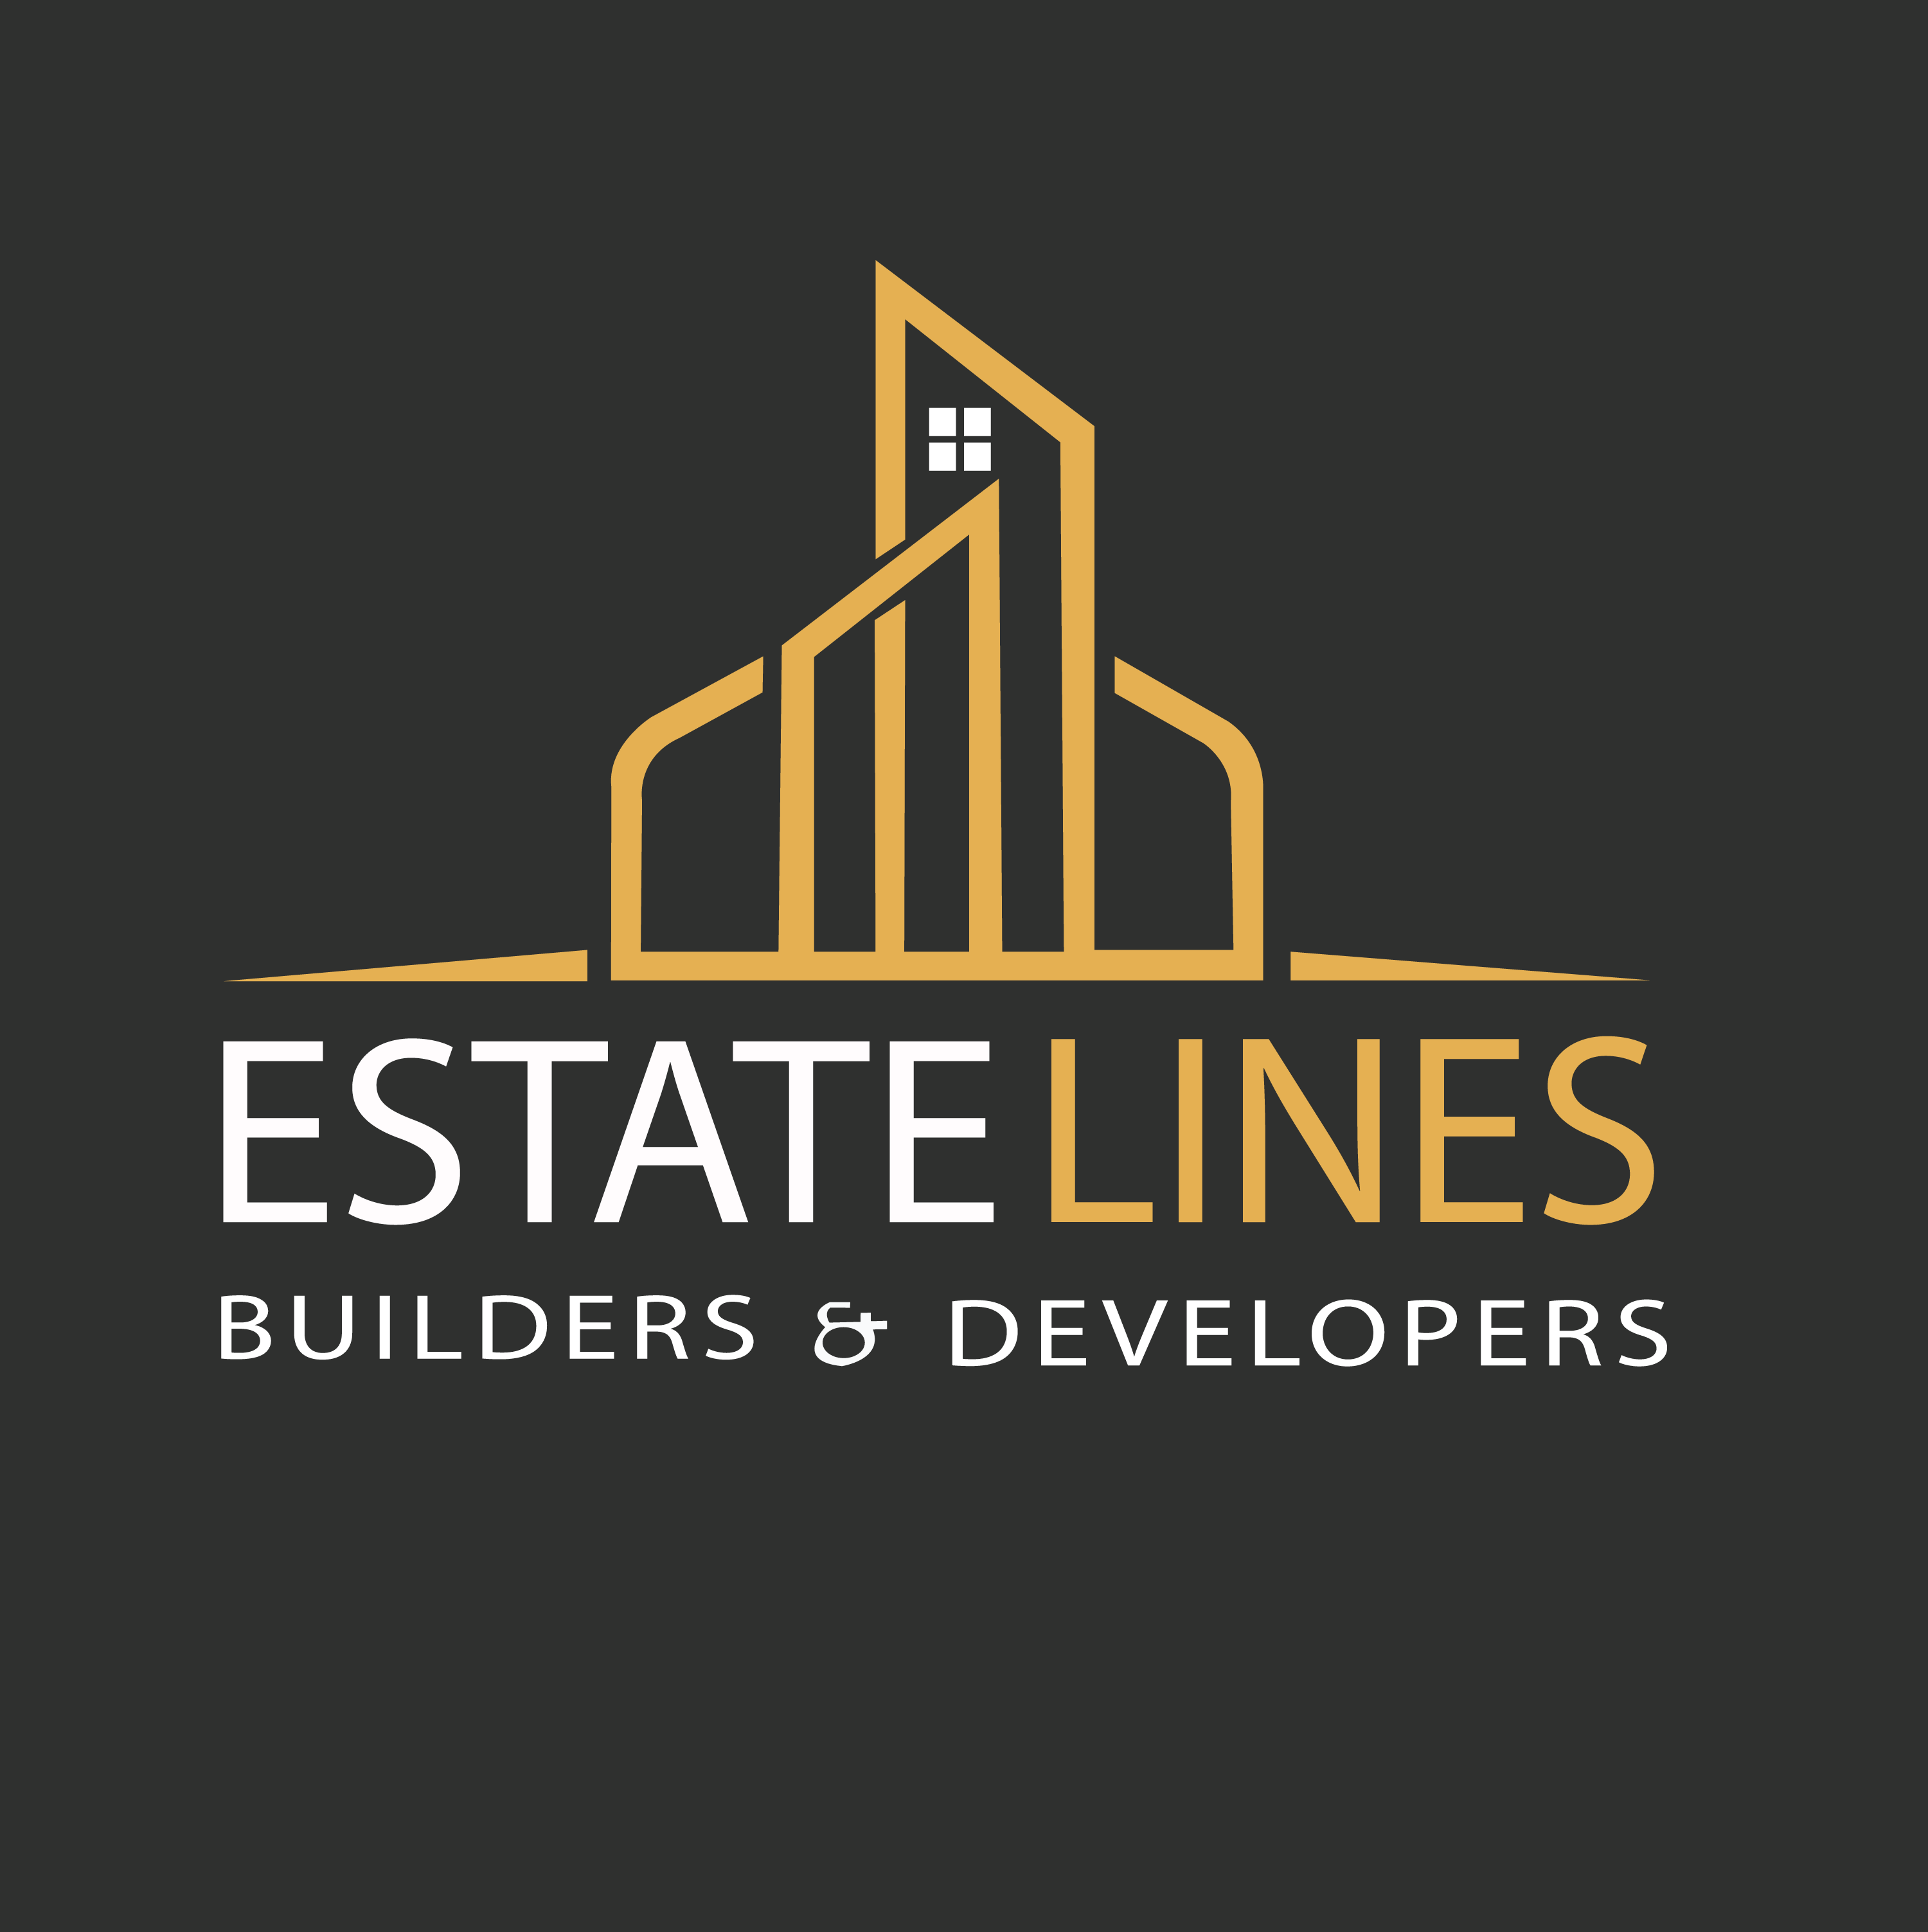 I will create a minimalist logo for your buisness.